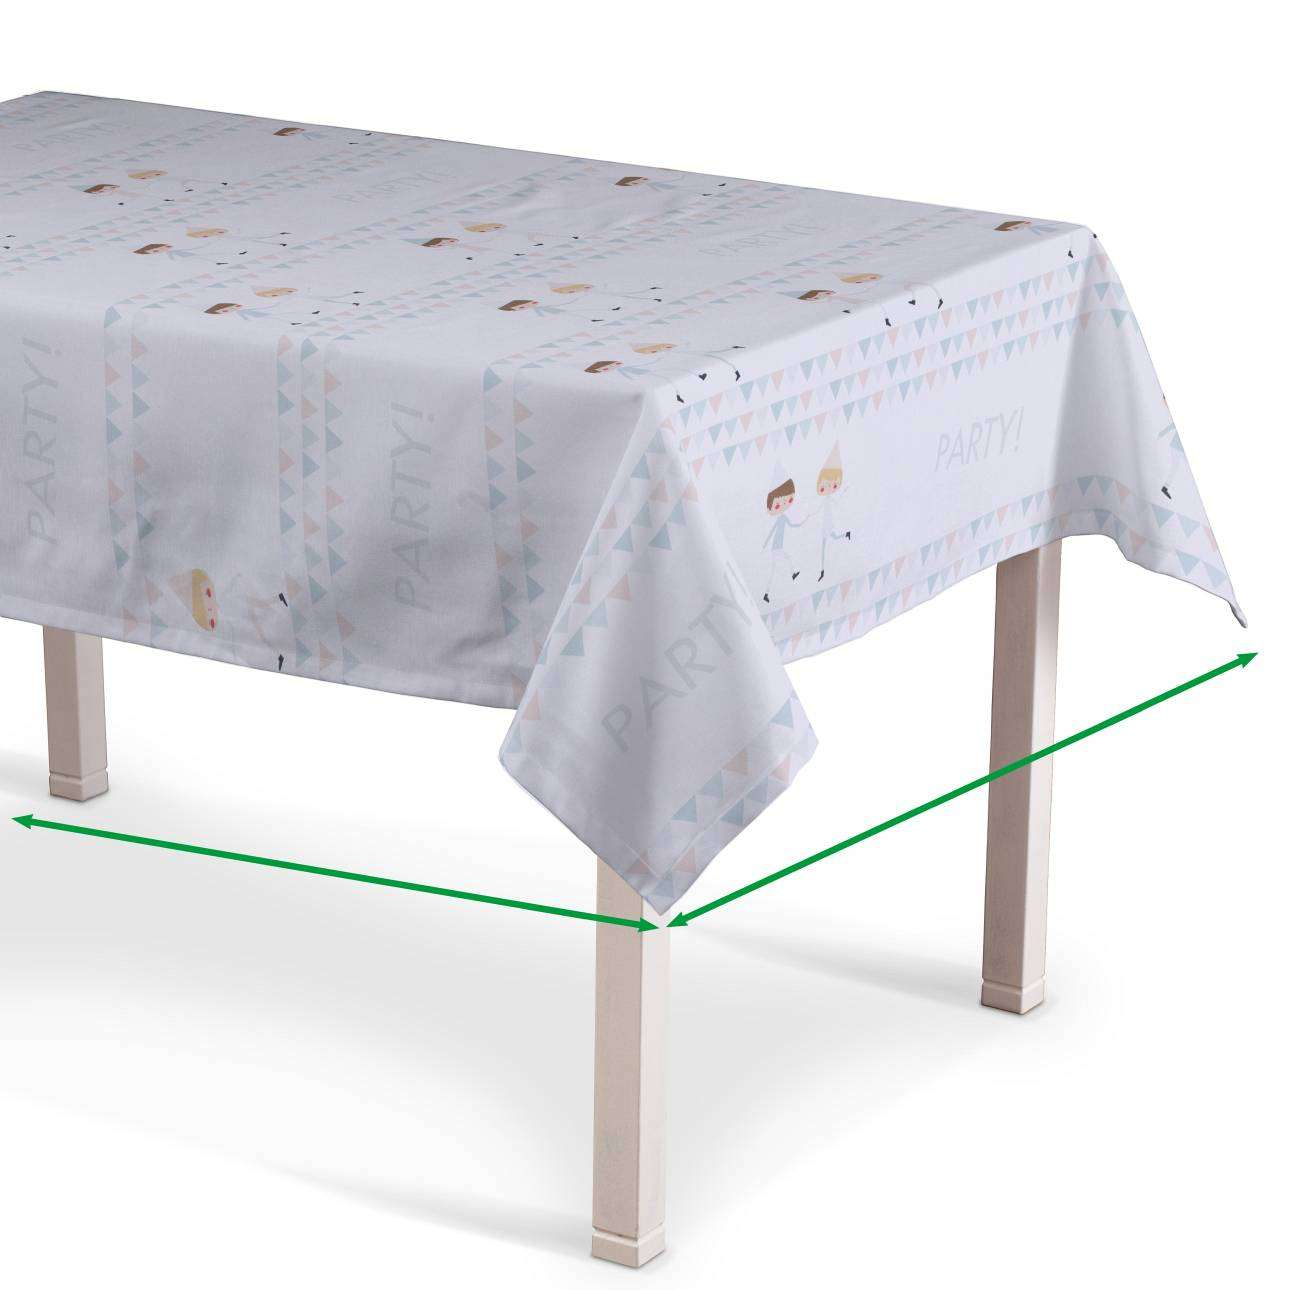 Rectangular tablecloth in collection Apanona, fabric: 151-01